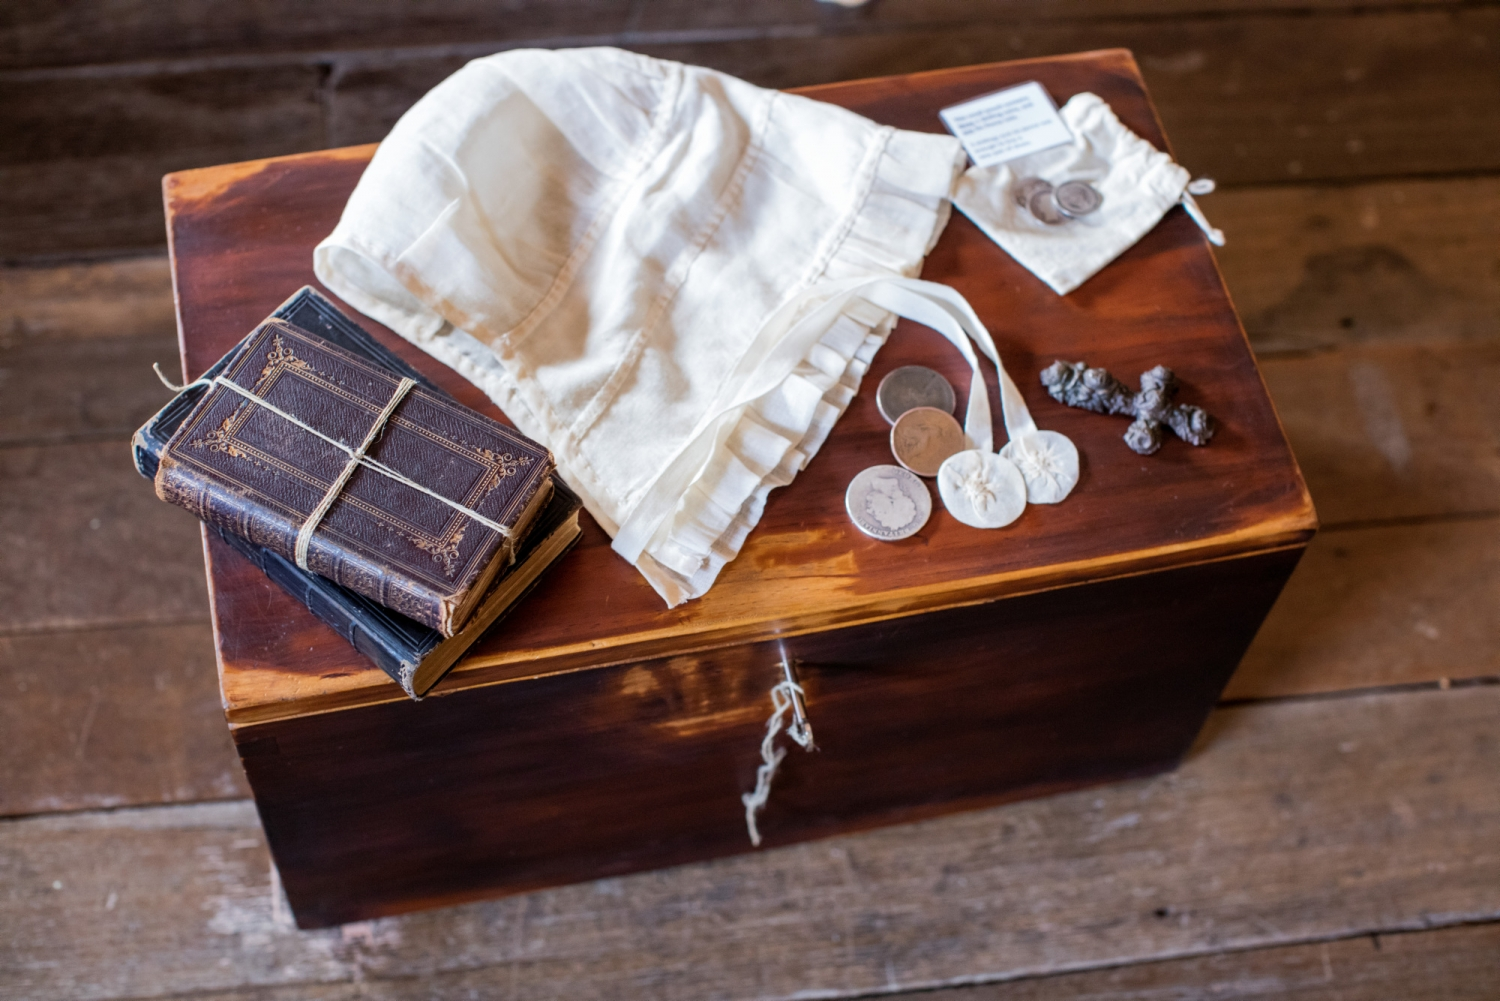 Wooden trunk with selection of clothing set out on top.